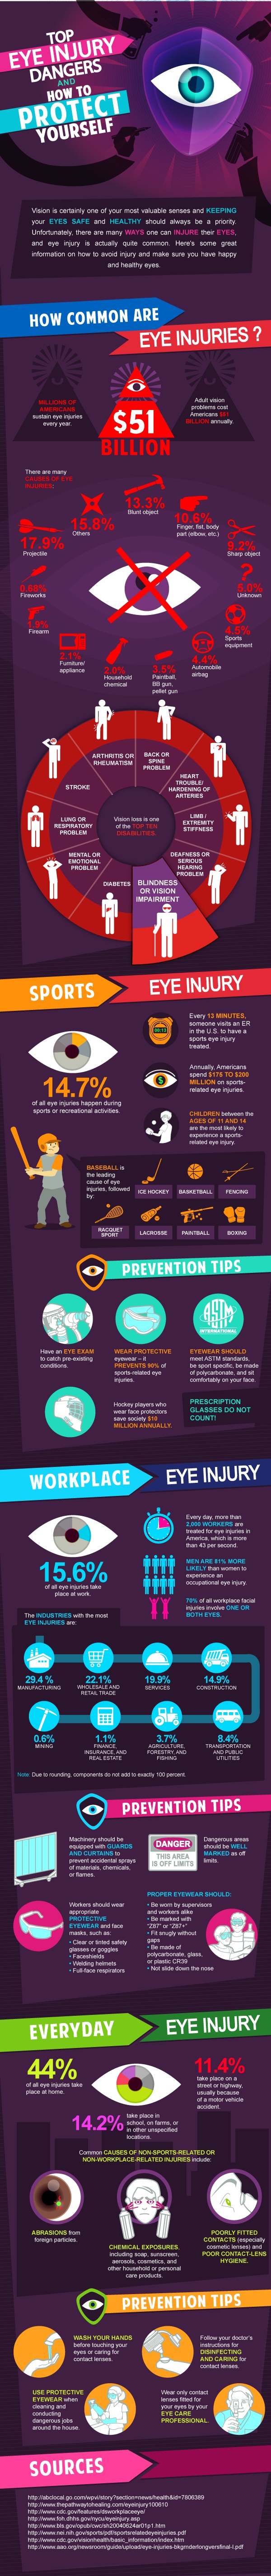 TOP-EYE-INJURY-DANGERS-AND-HOW-TO-PROTECT-YOURSELF-Infographic